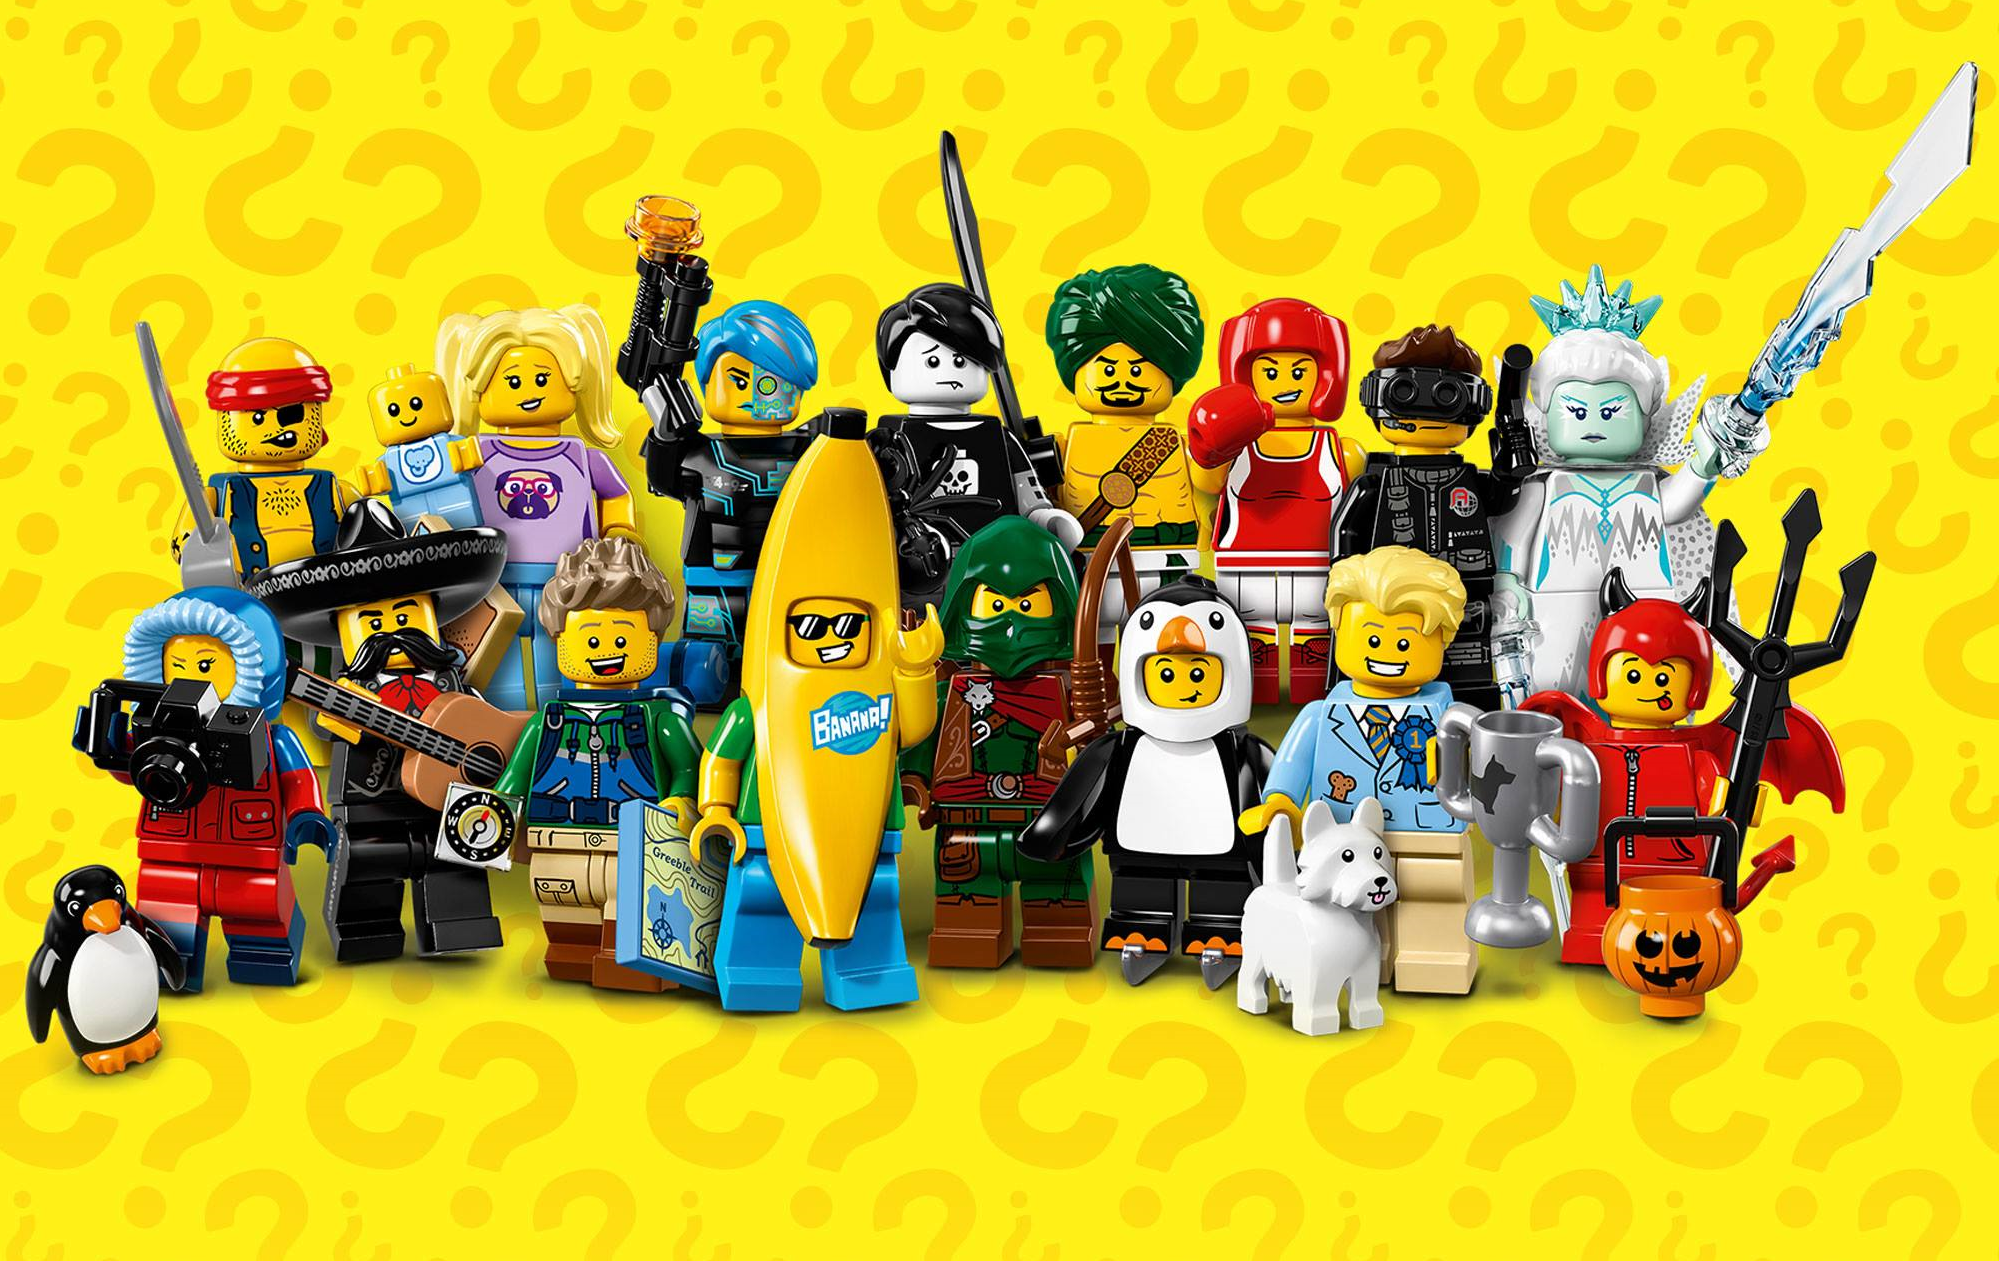 LEGO-MINIFIGURES SERIES 16 X 1 HEAD FOR THE ROGUE FROM SERIES 16 PARTS